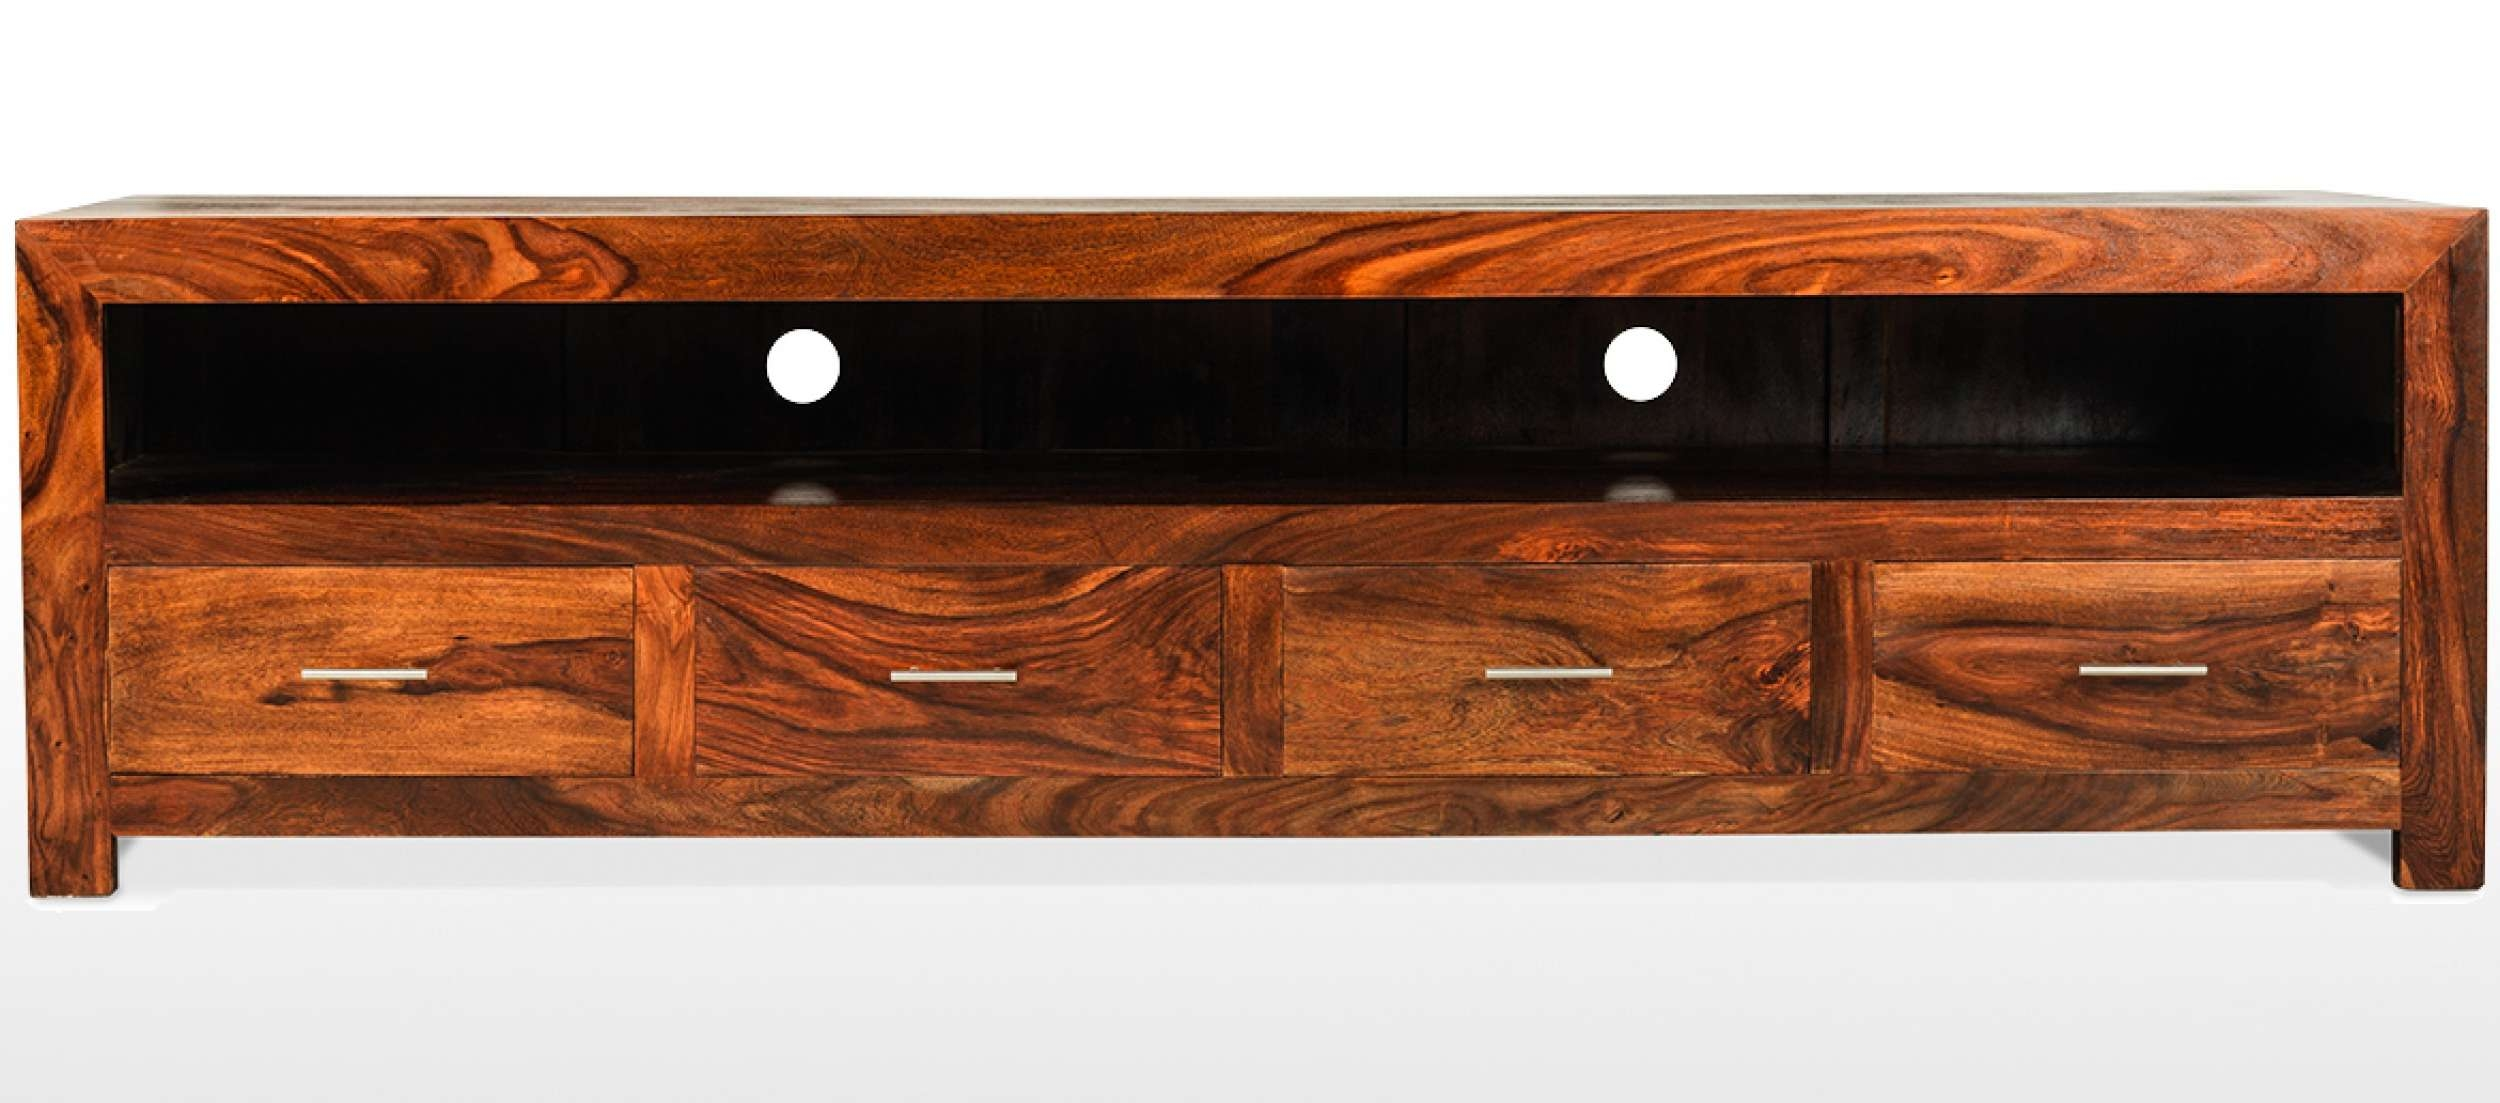 Sheesham Wood Tv Cabinet | Memsaheb With Regard To Sheesham Wood Tv Stands (View 12 of 15)